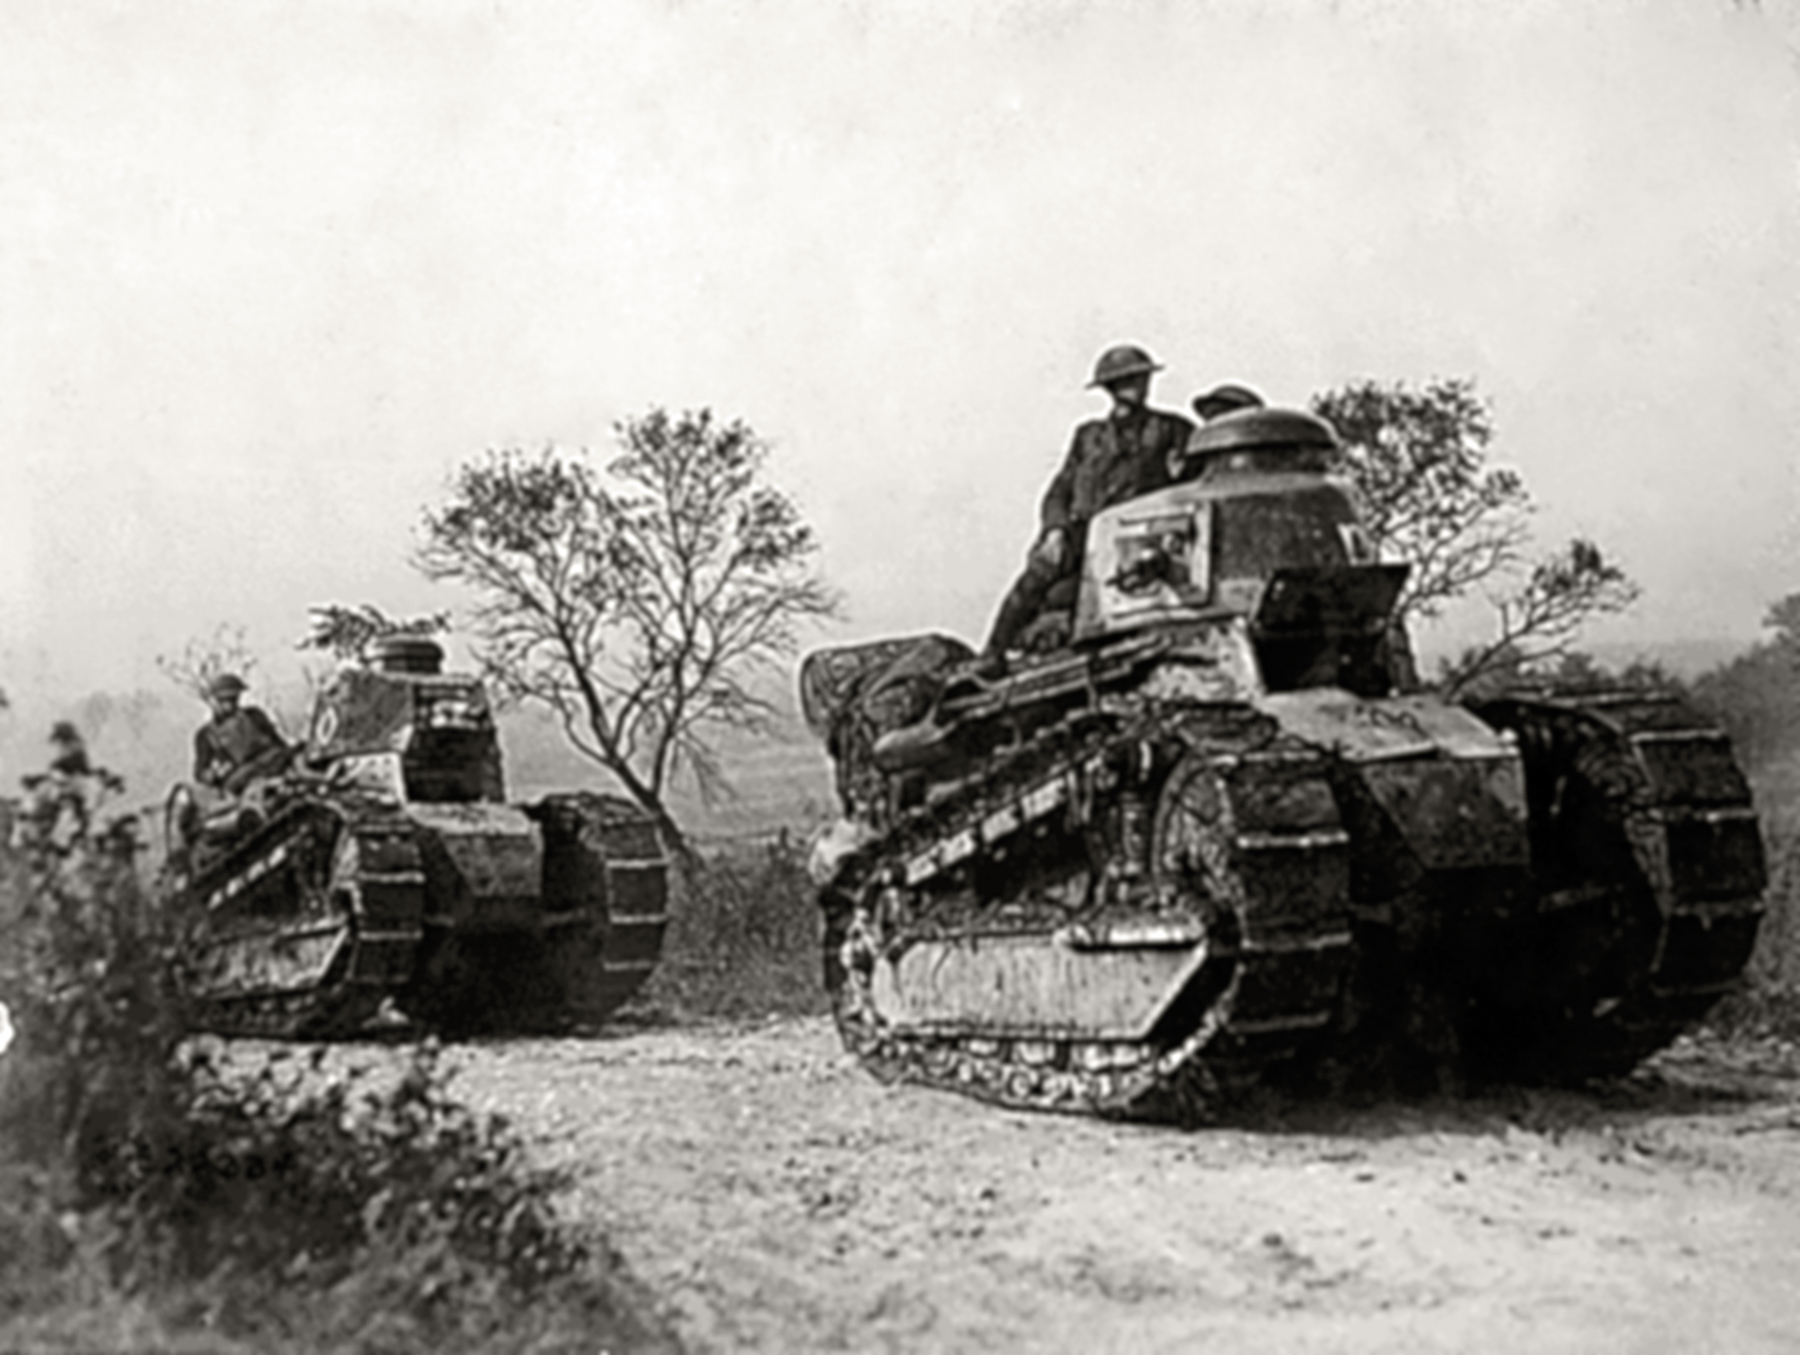 French Army Renault FT 17s with British troops during the Battle of France 1940 ebay 01